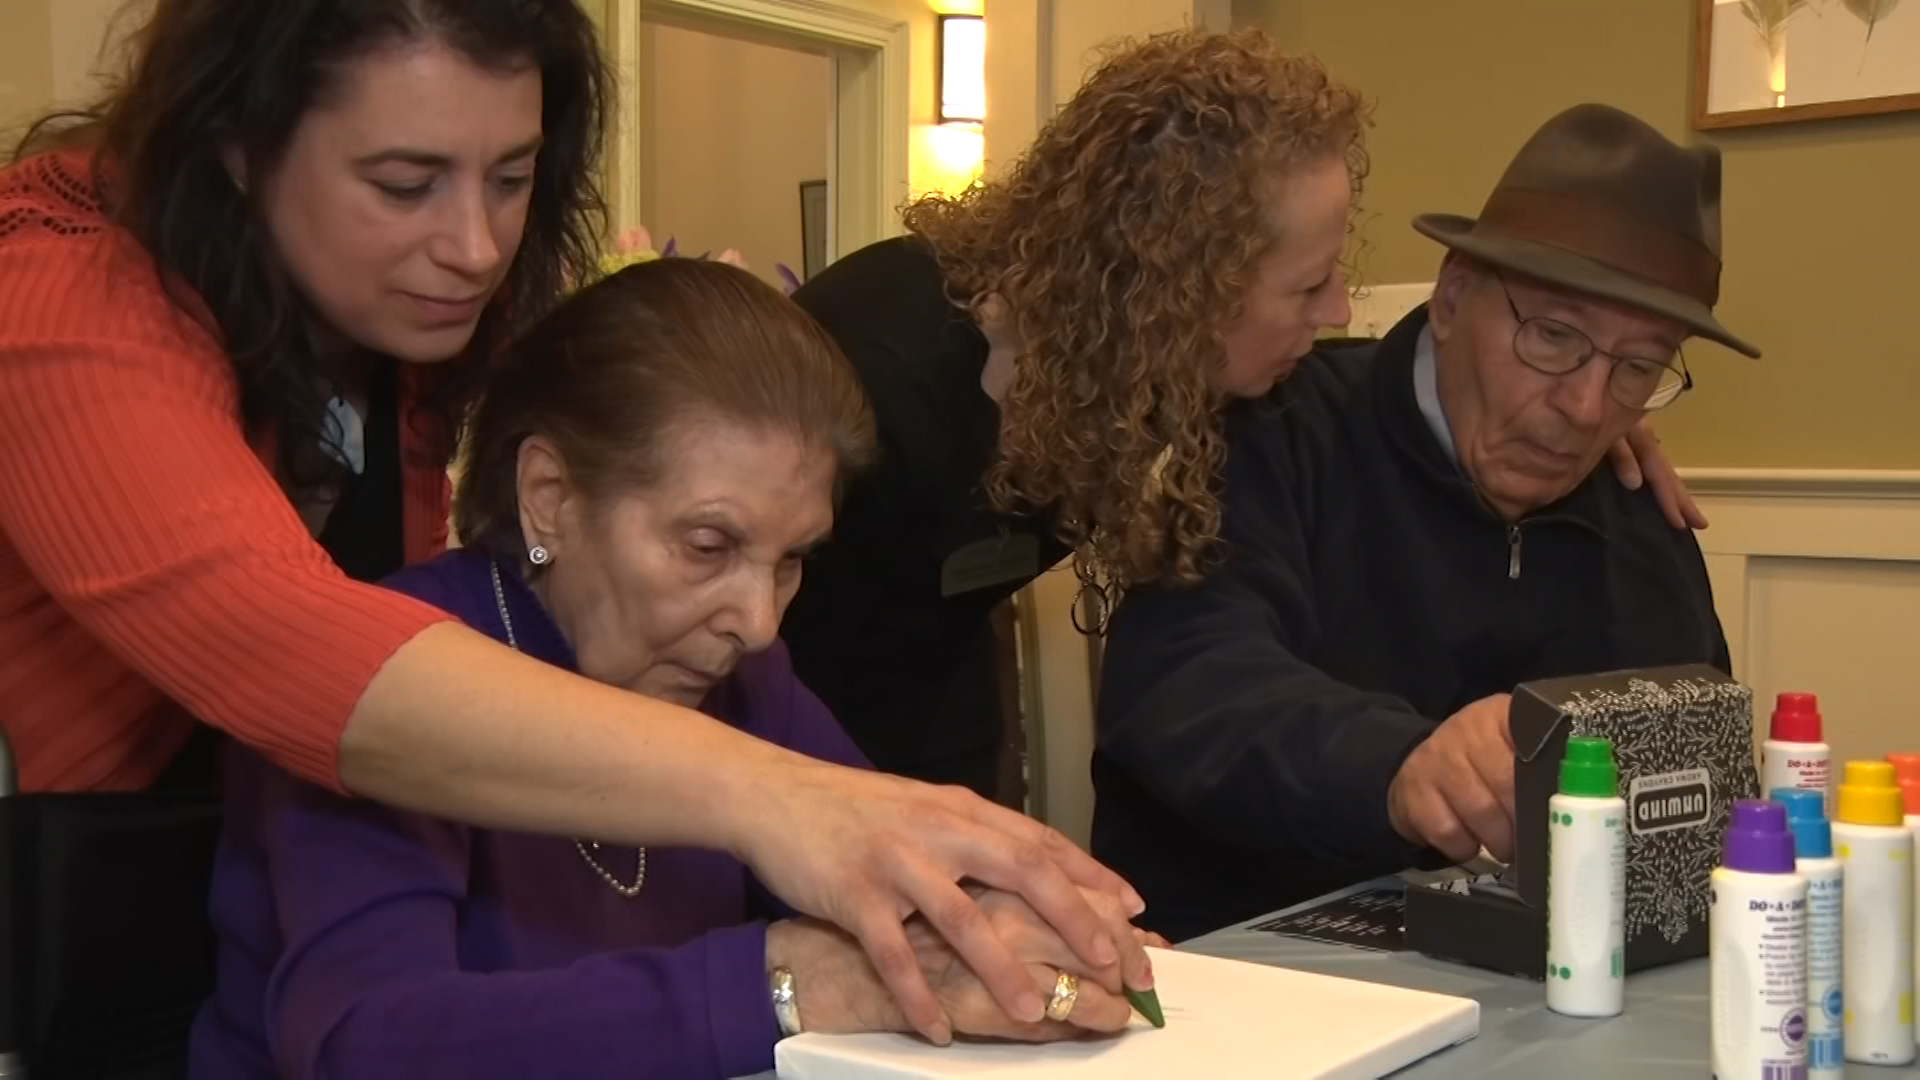 Art therapy helps dementia patients communicate and connect | Video | NJTV News